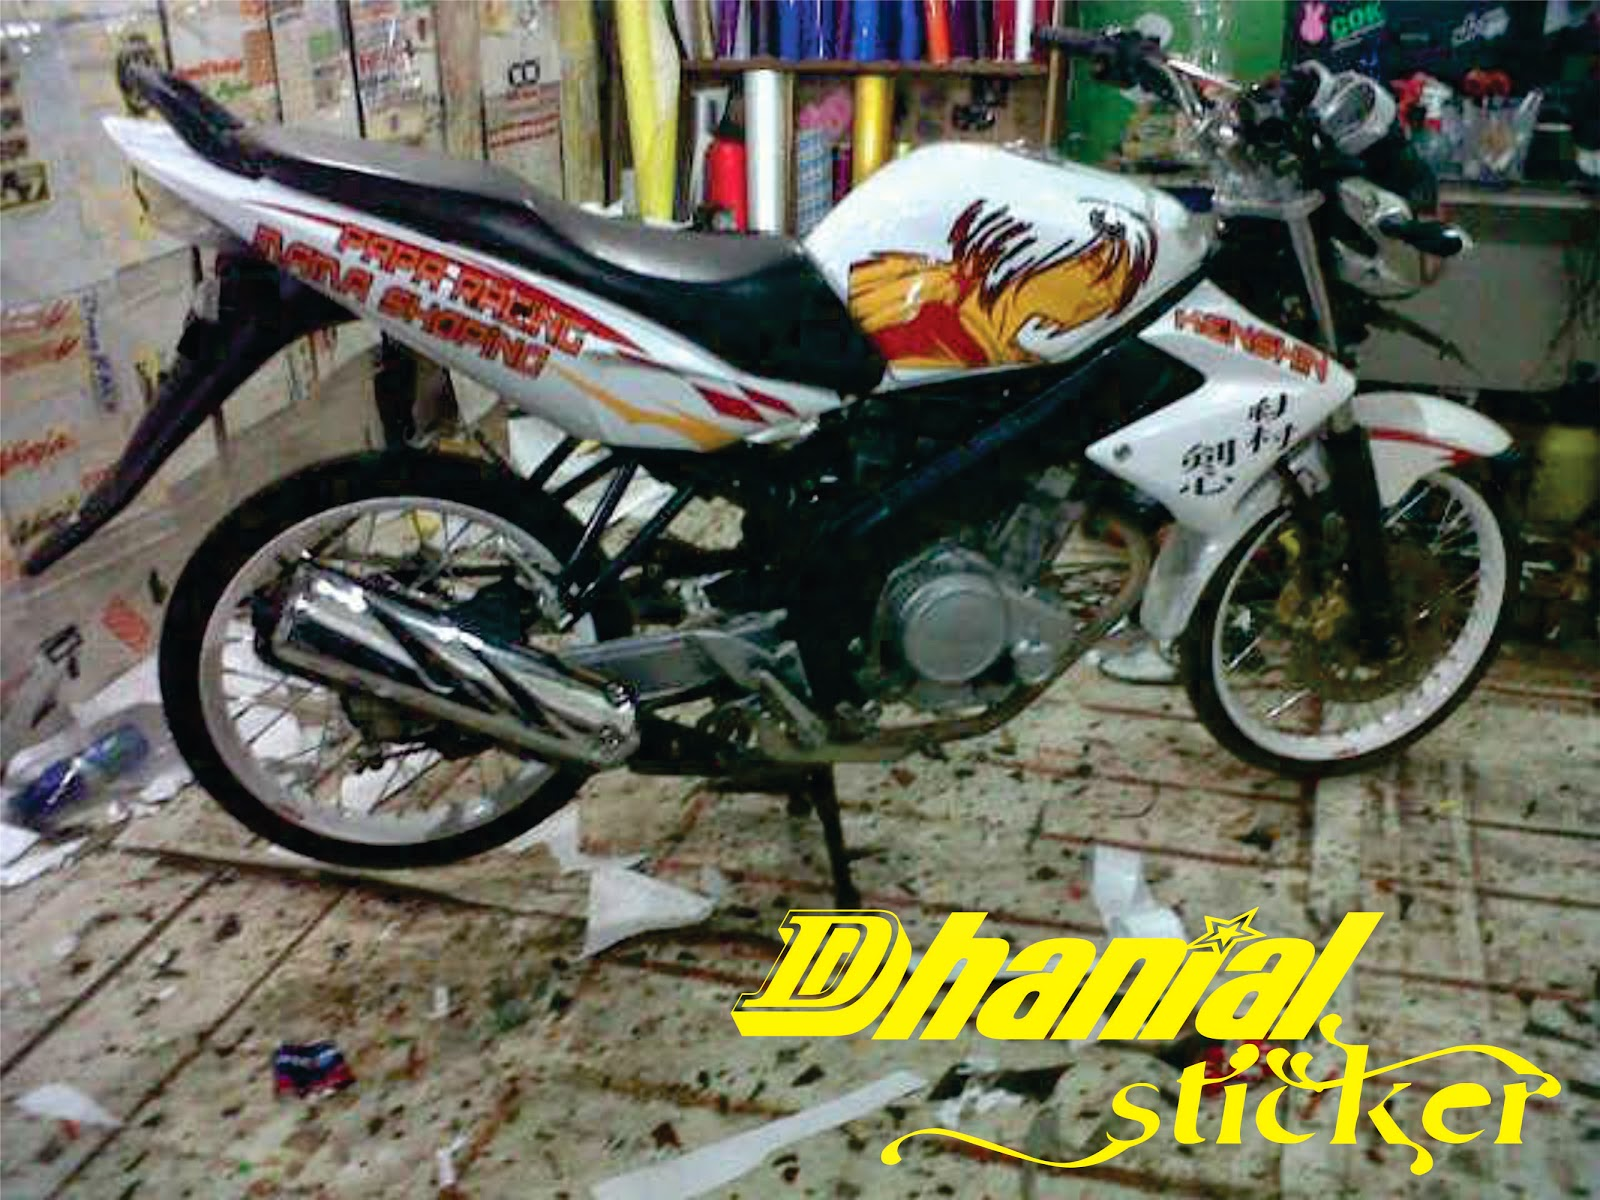 dhanial sticker: 2014